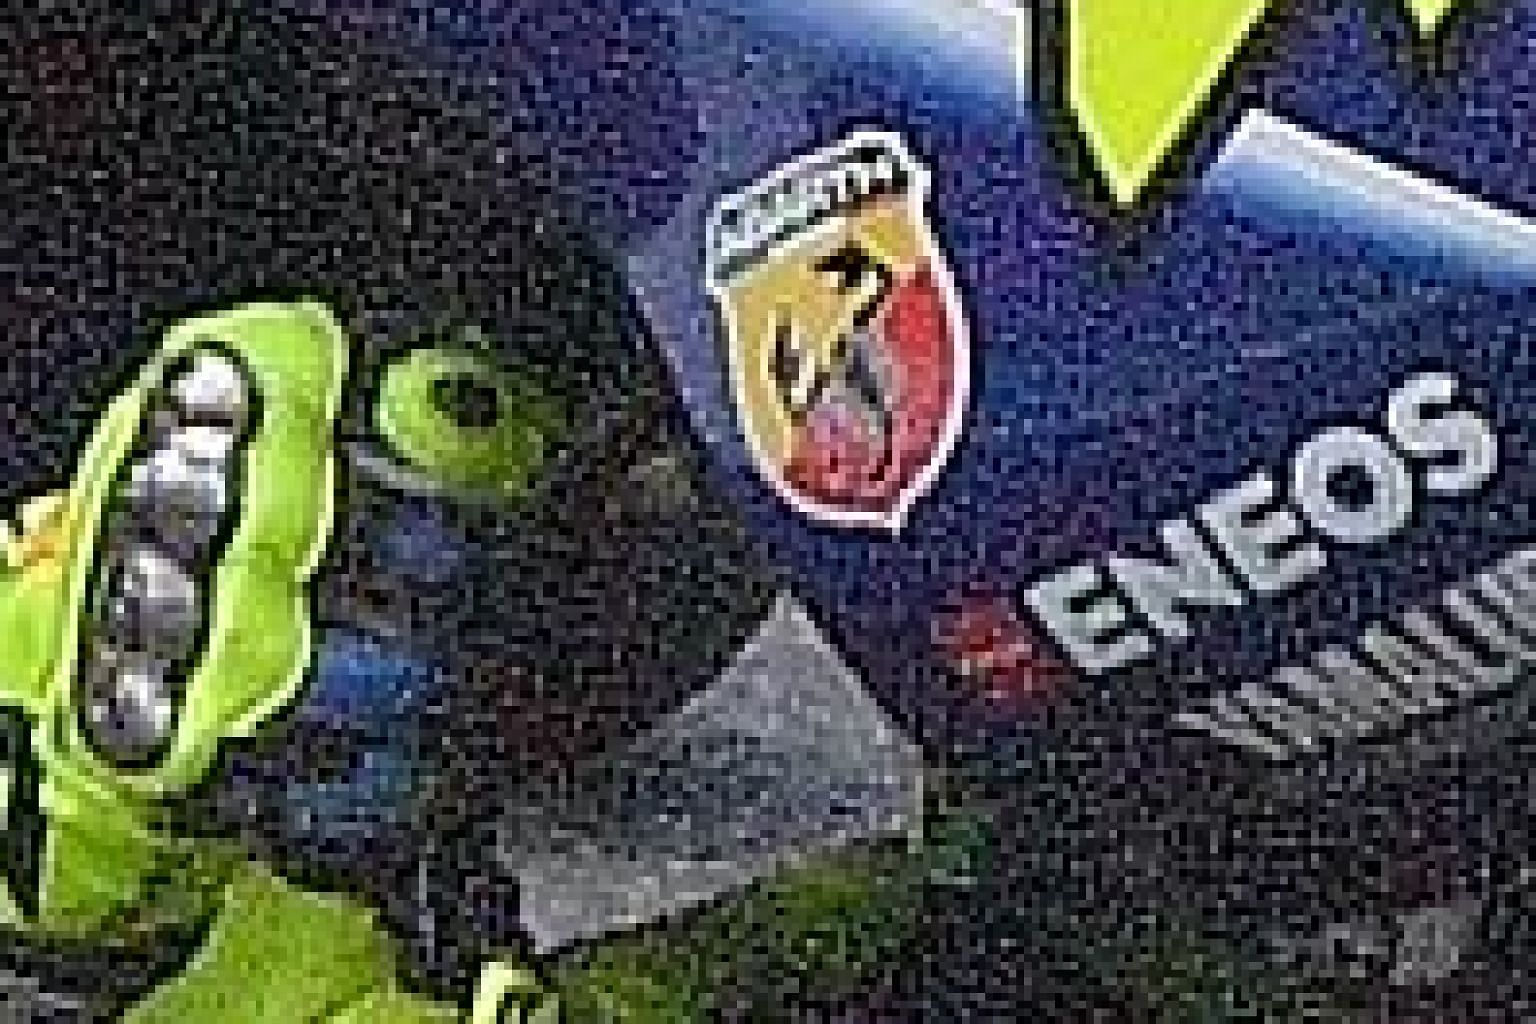 MotoGP legend Valentino Rossi leading early in Sunday's Italian GP. The 38- year-old raced in pain after a training accident and ended fourth, and Thai fans will hope he is still competing next year.